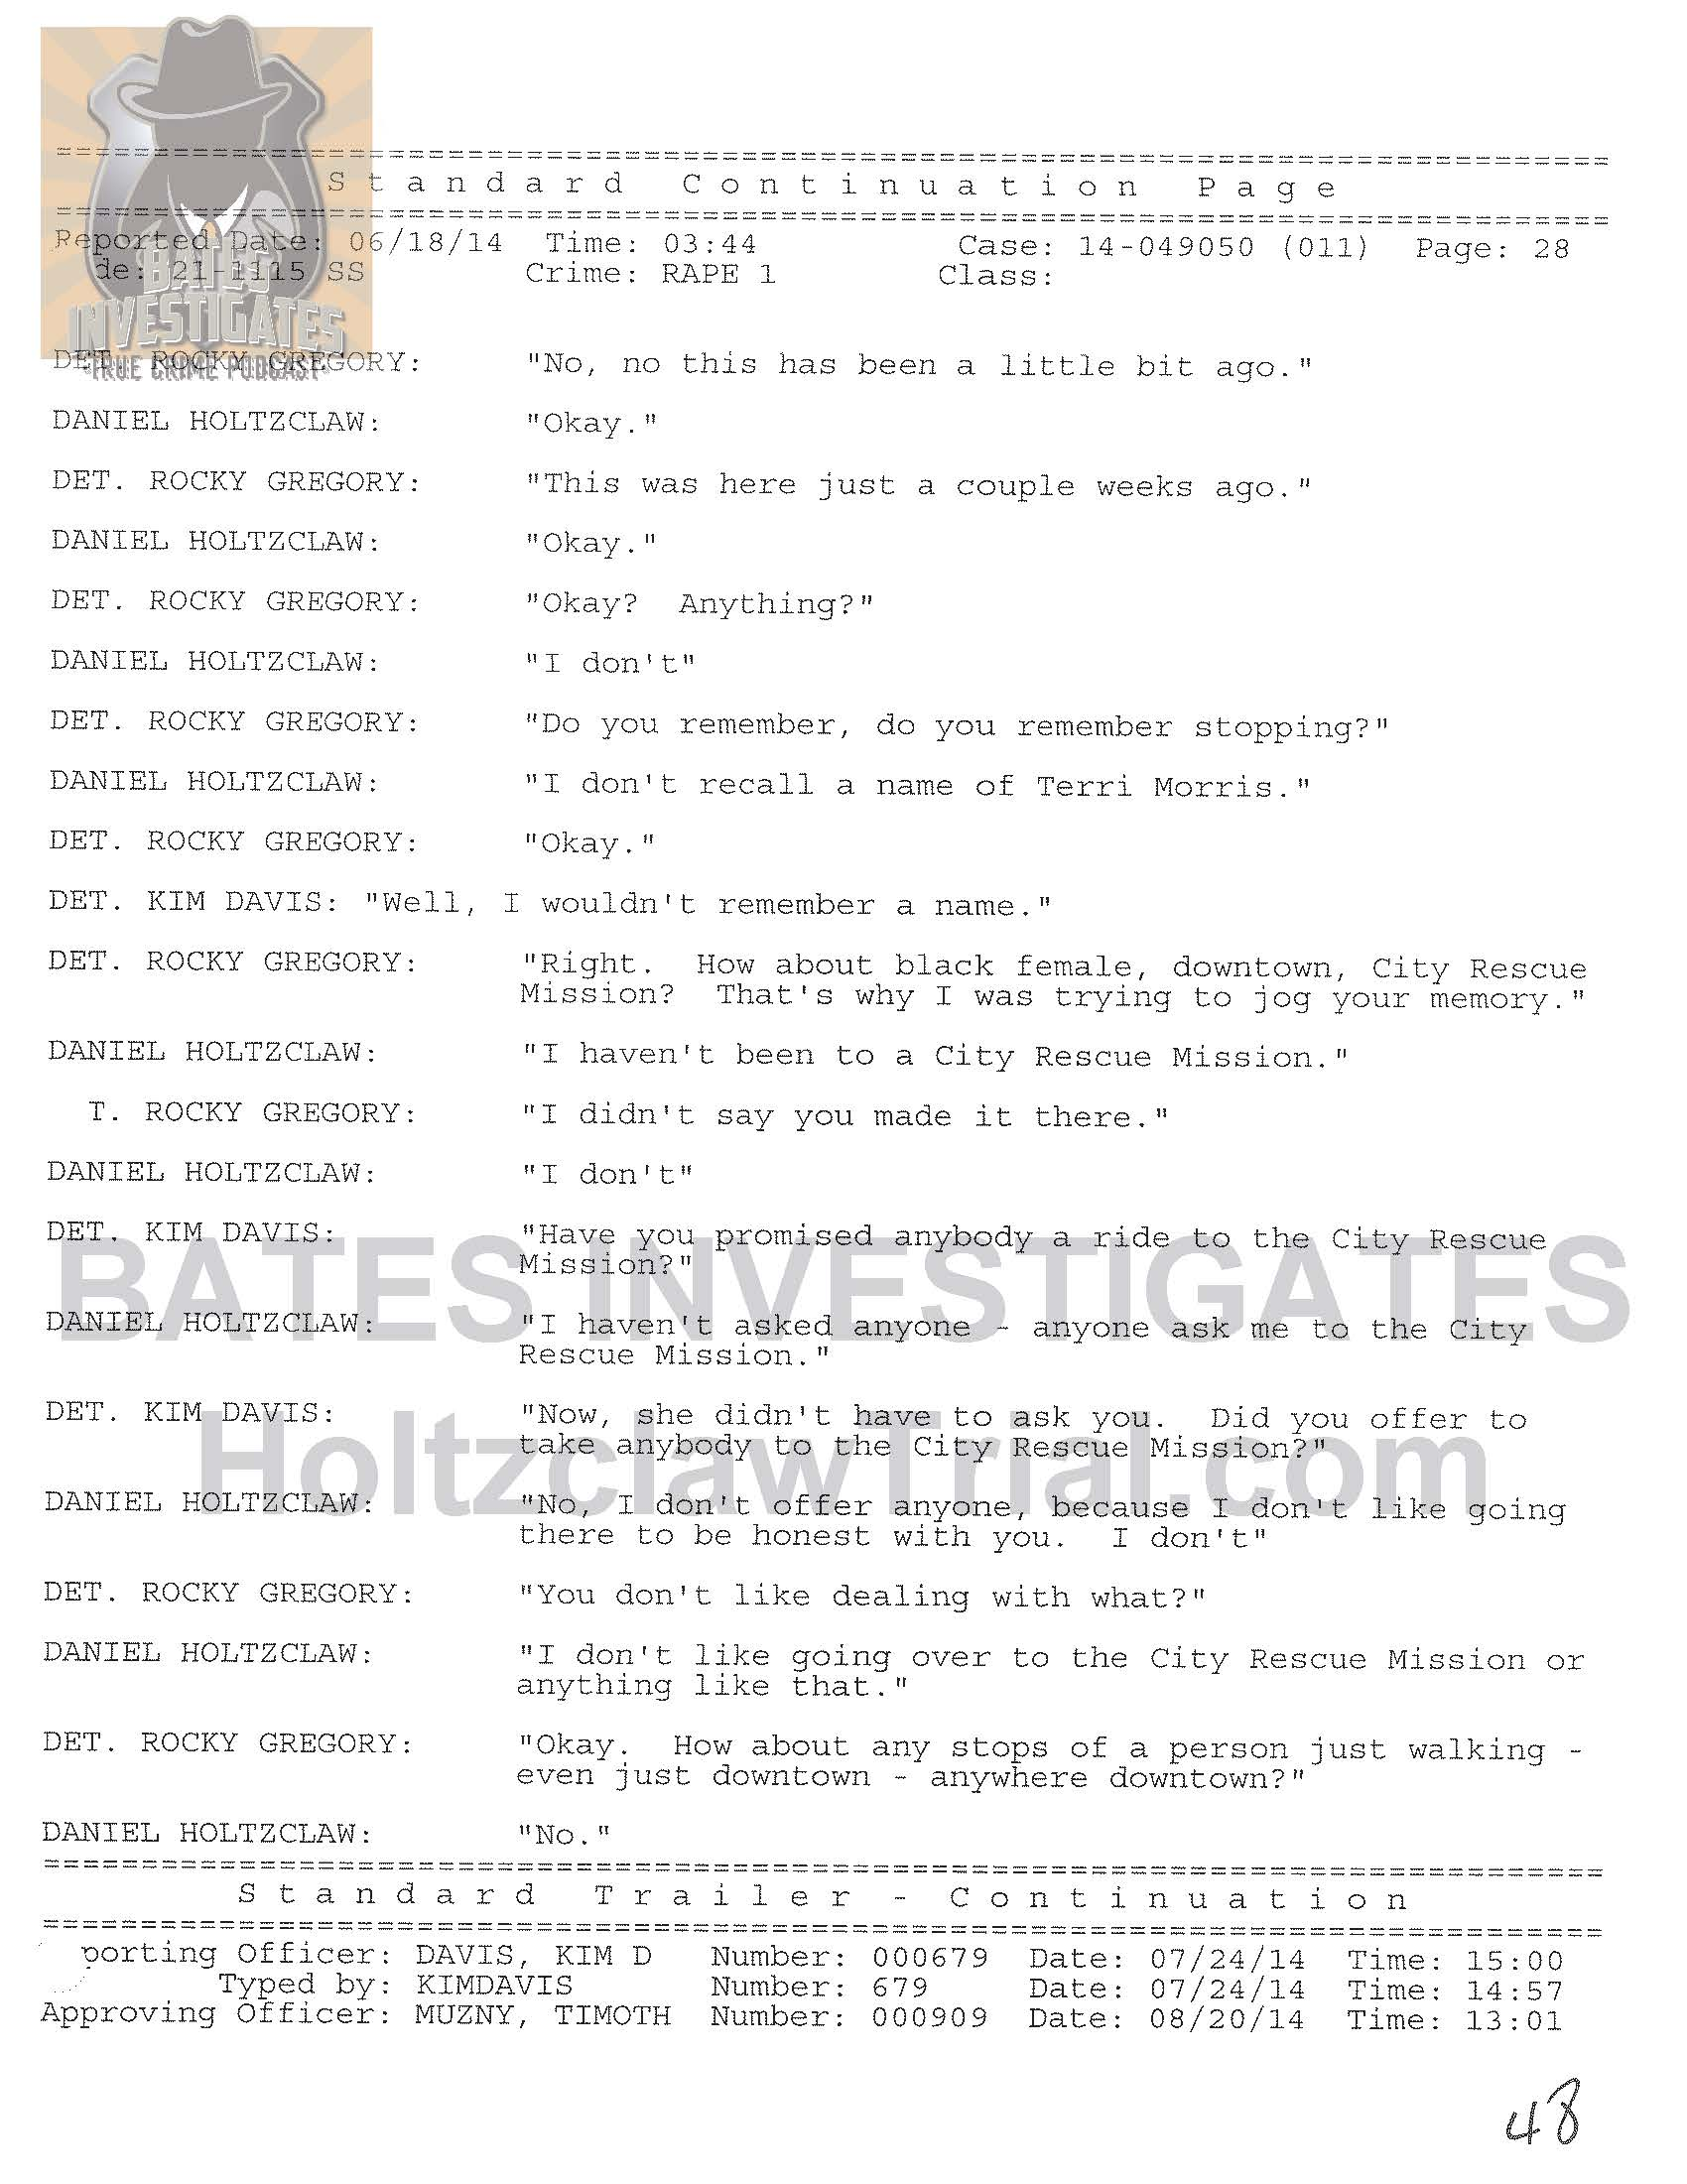 Holtzclaw Interrogation Transcript - Ep02 Redacted_Page_28.jpg